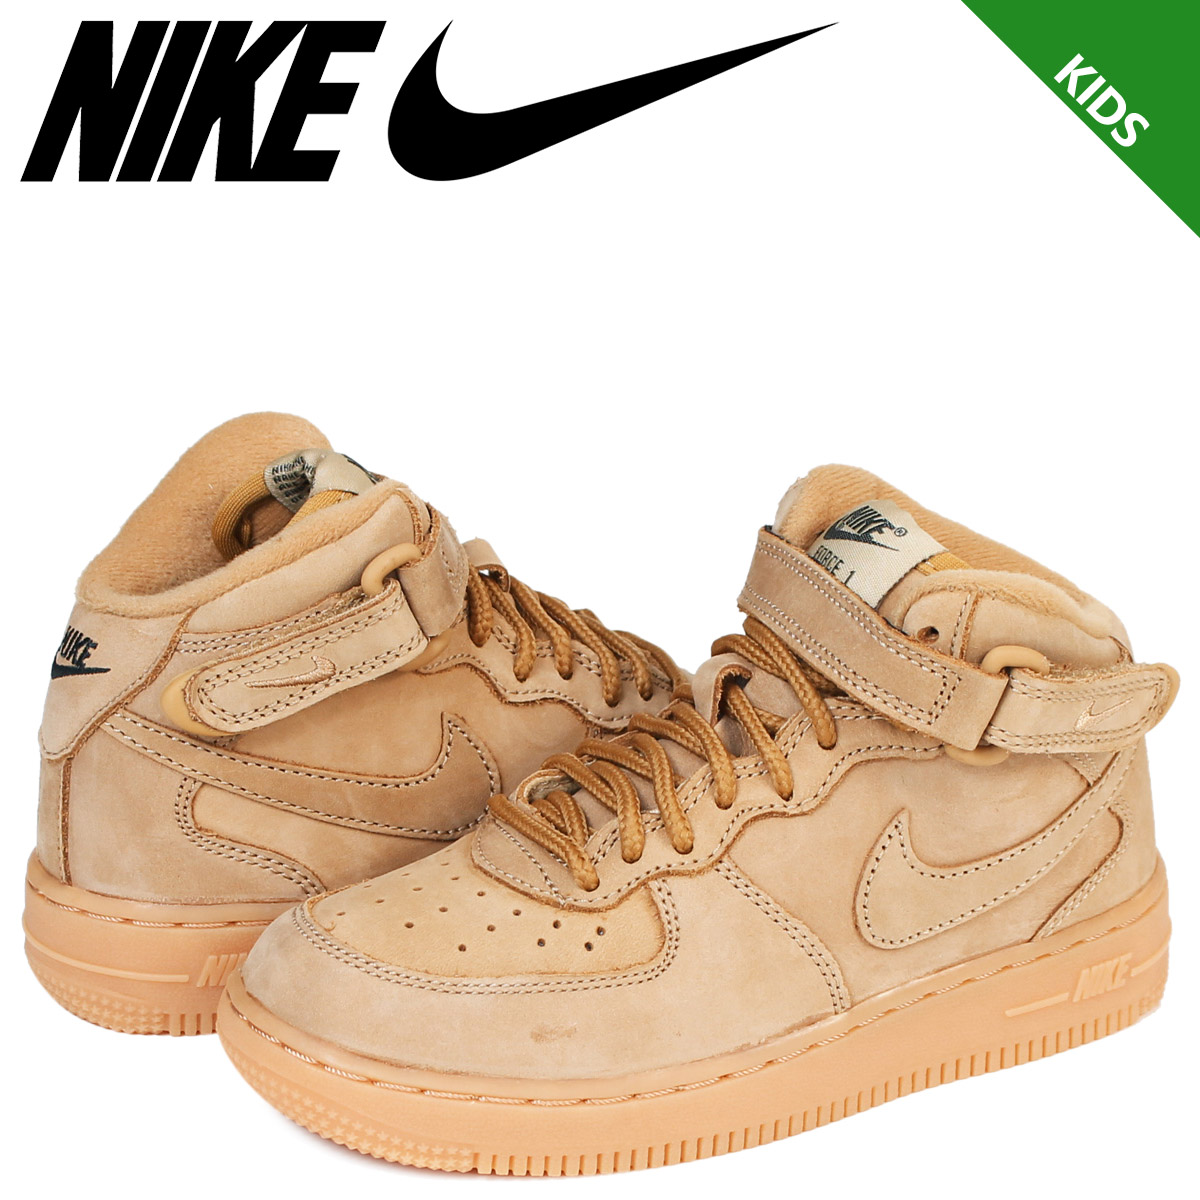 Force 1 Mid Nike Kids Wb Brown 203 Shoes Ah0756 Air Ps Sneakers rsoCxBhdtQ